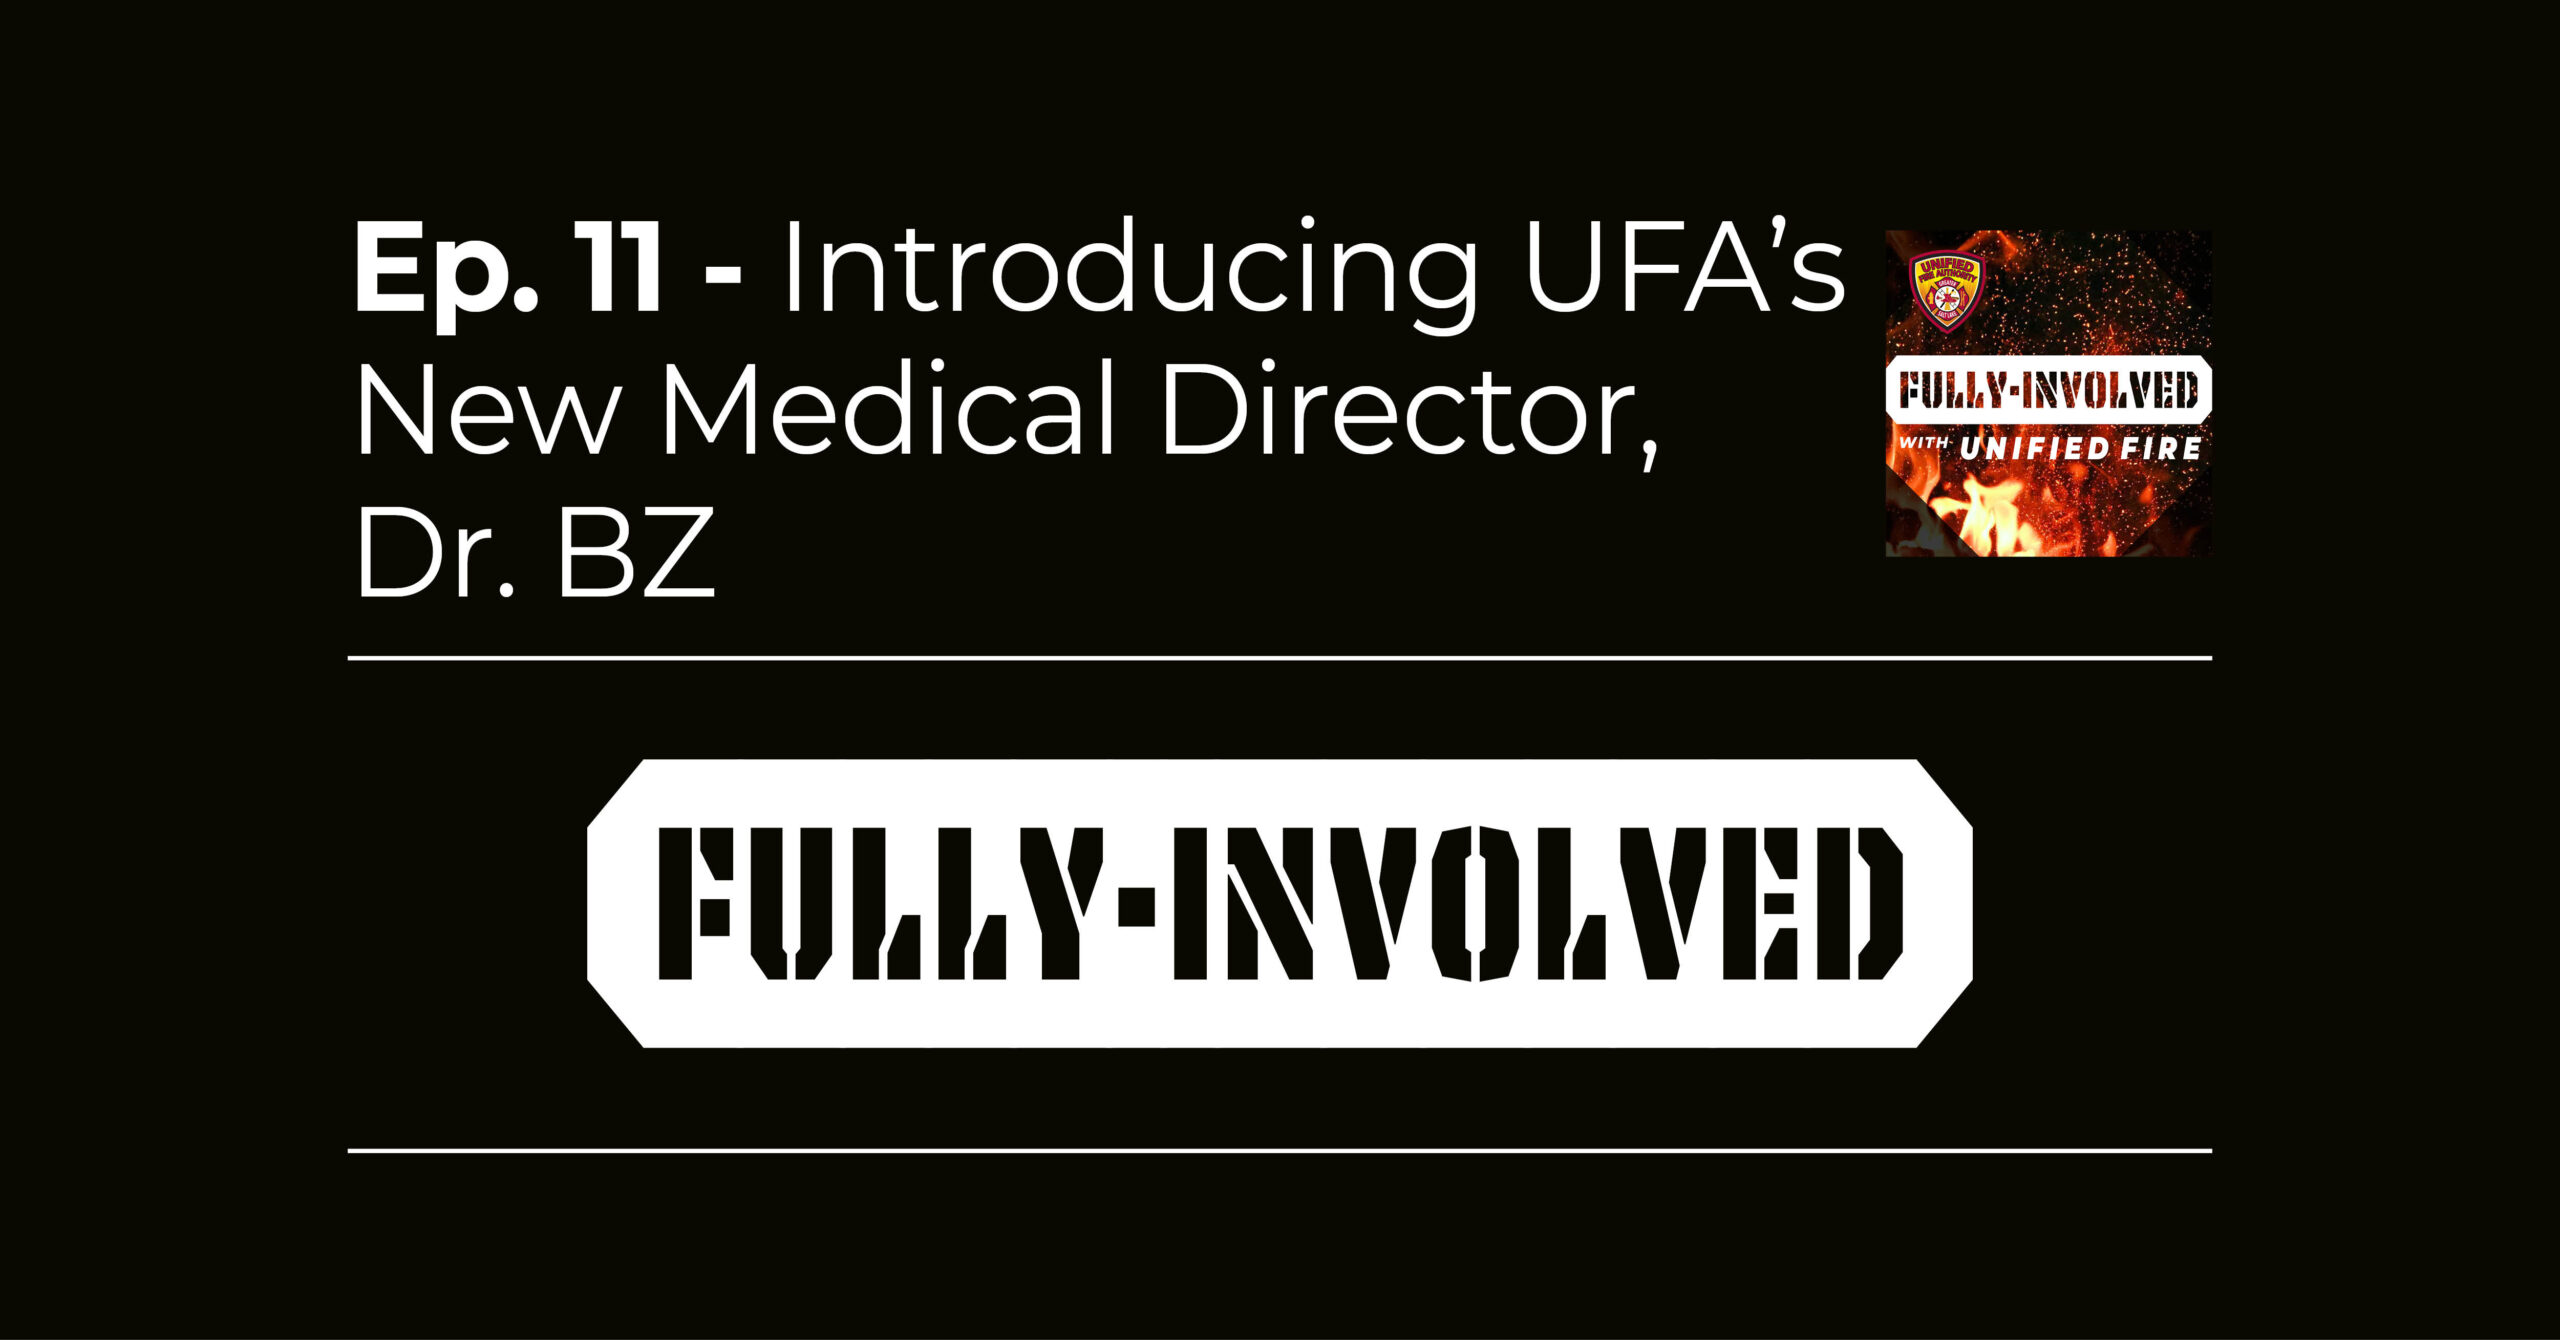 Fully Involved Ep. 11 - Introducing UFA's New Medical Director, Dr. BZ